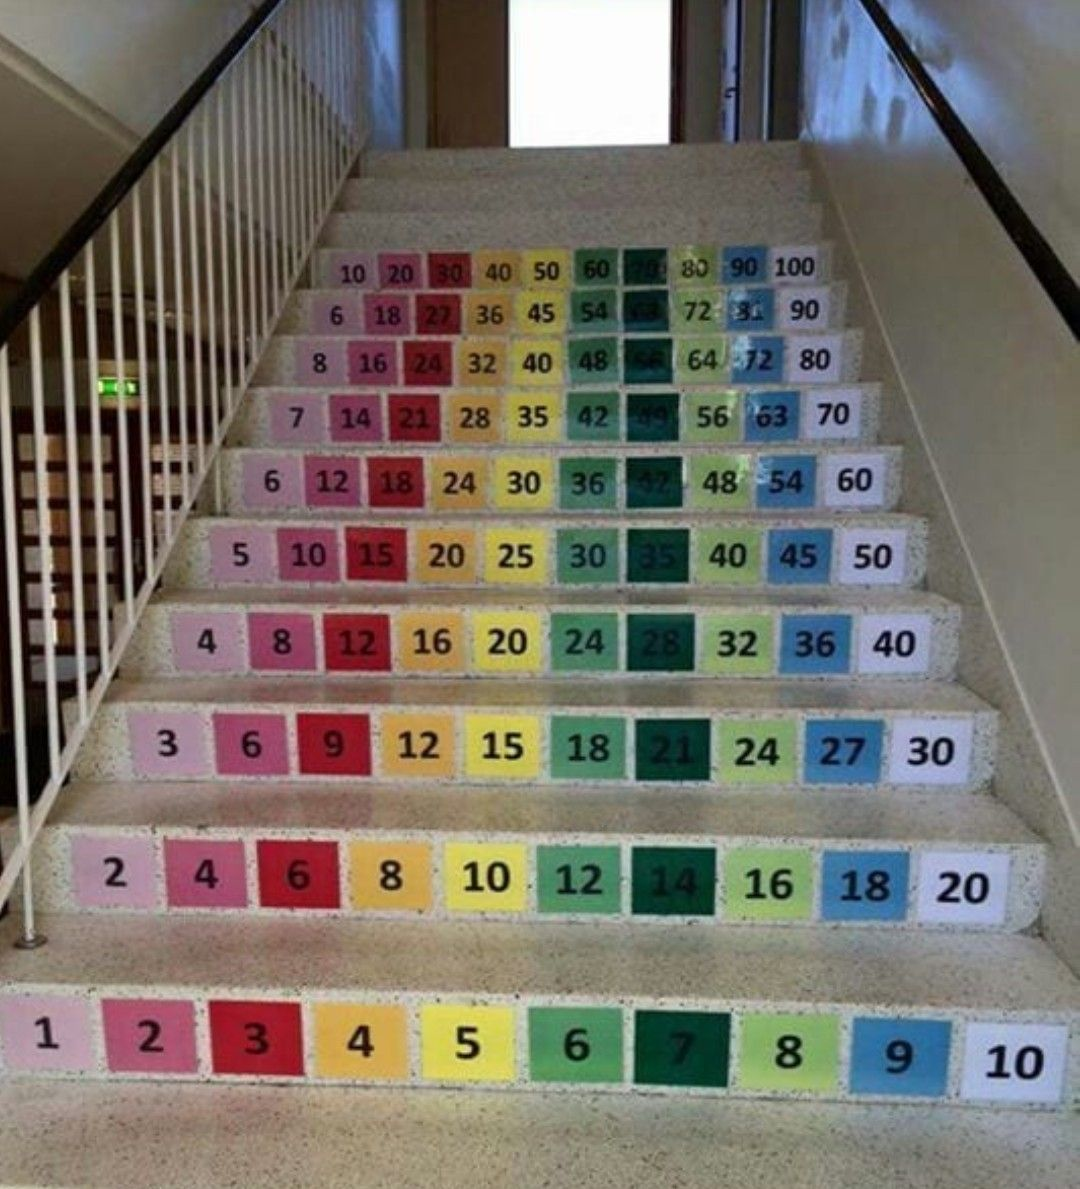 Pin By Niki Bouck On Schoolhouse In 2020 School Improvement Stair Decor Stairs